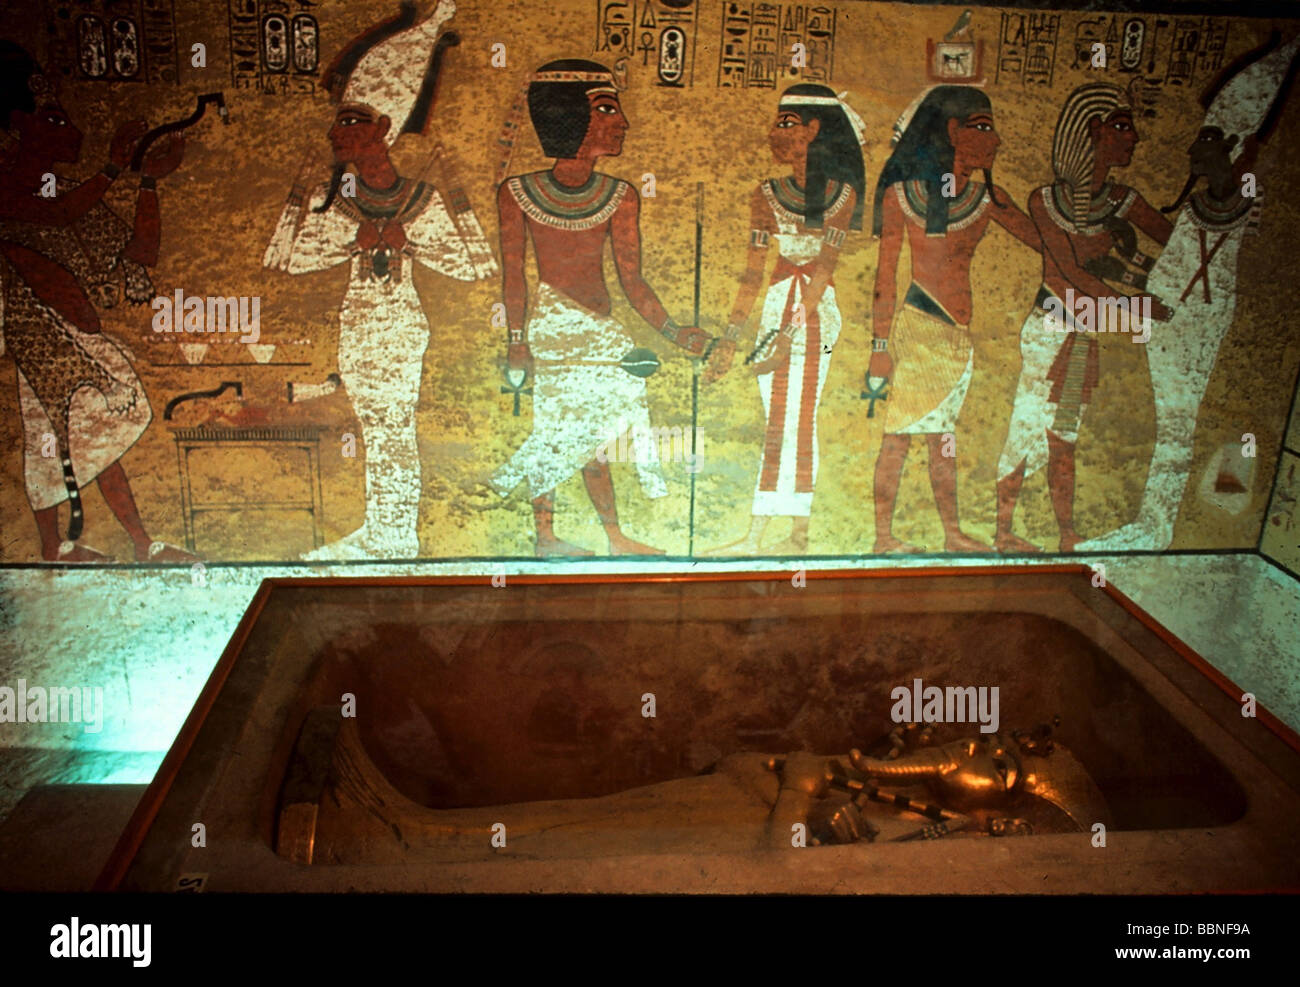 Tutankhamun, King of Egypt, 1333 - 1323 BC, 18th Dynasty, grave, Egypt, Additional-Rights-Clearances-NA - Stock Image